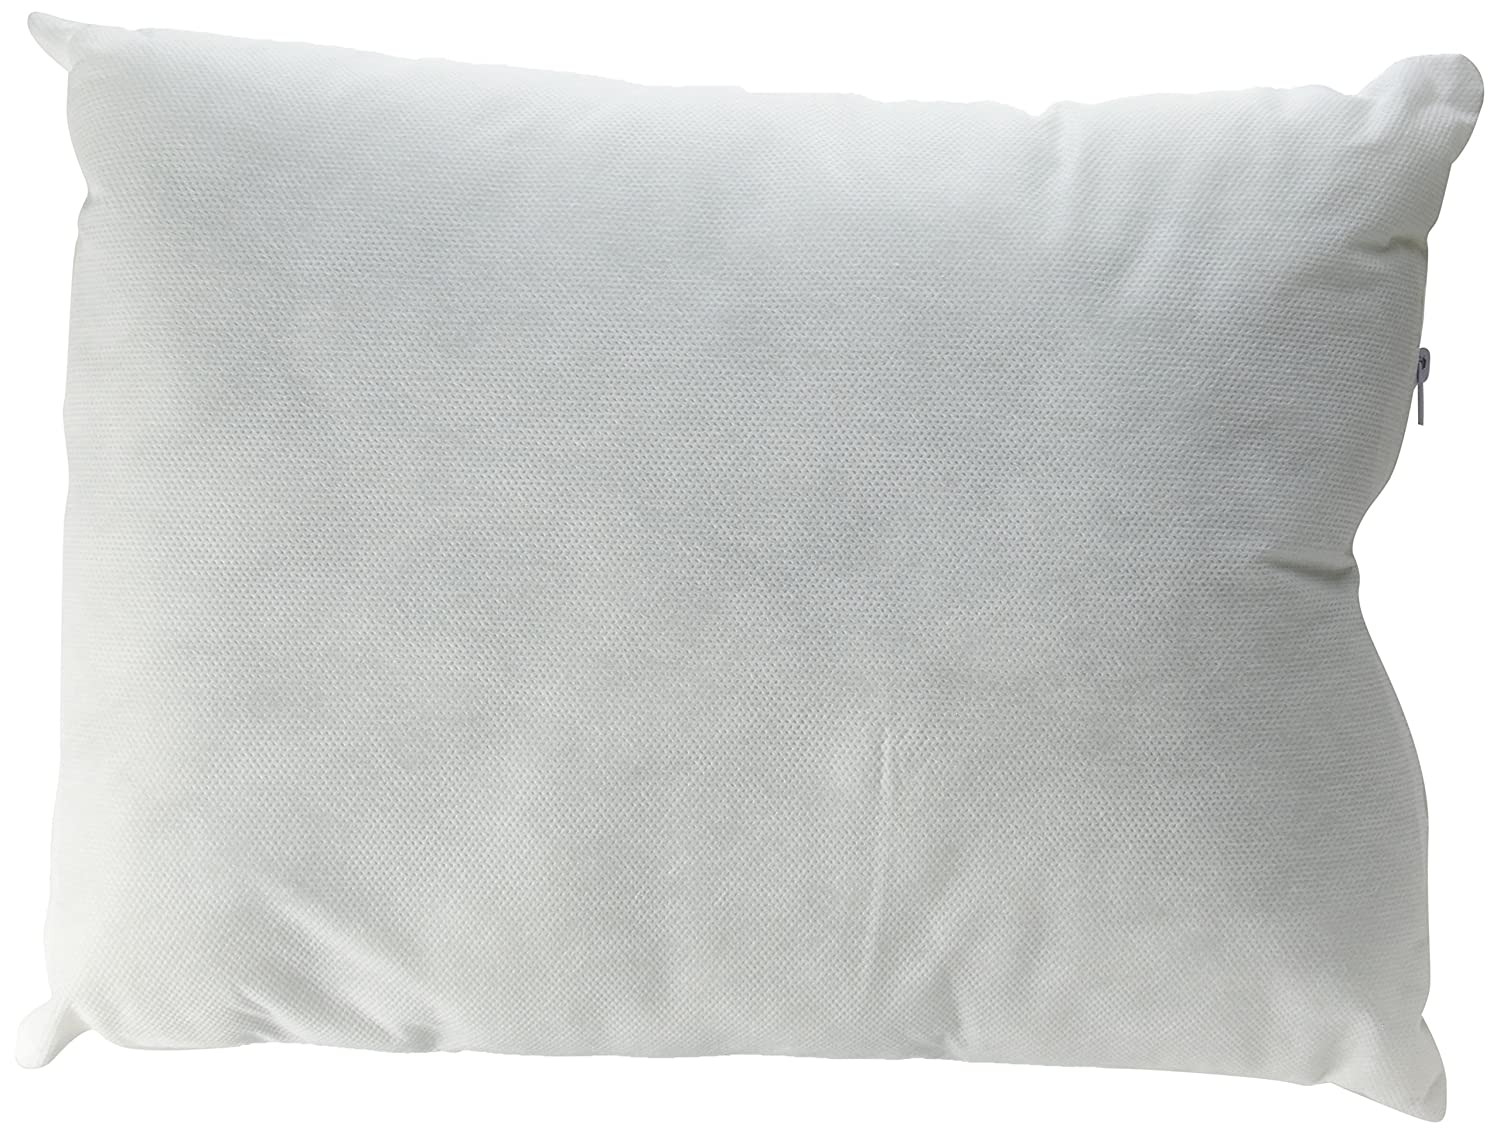 Fairfield CPW1216 4 Count Crafter's Choice Polyester Filled Economical Pillow Insert, 12 x 16 12 x 16